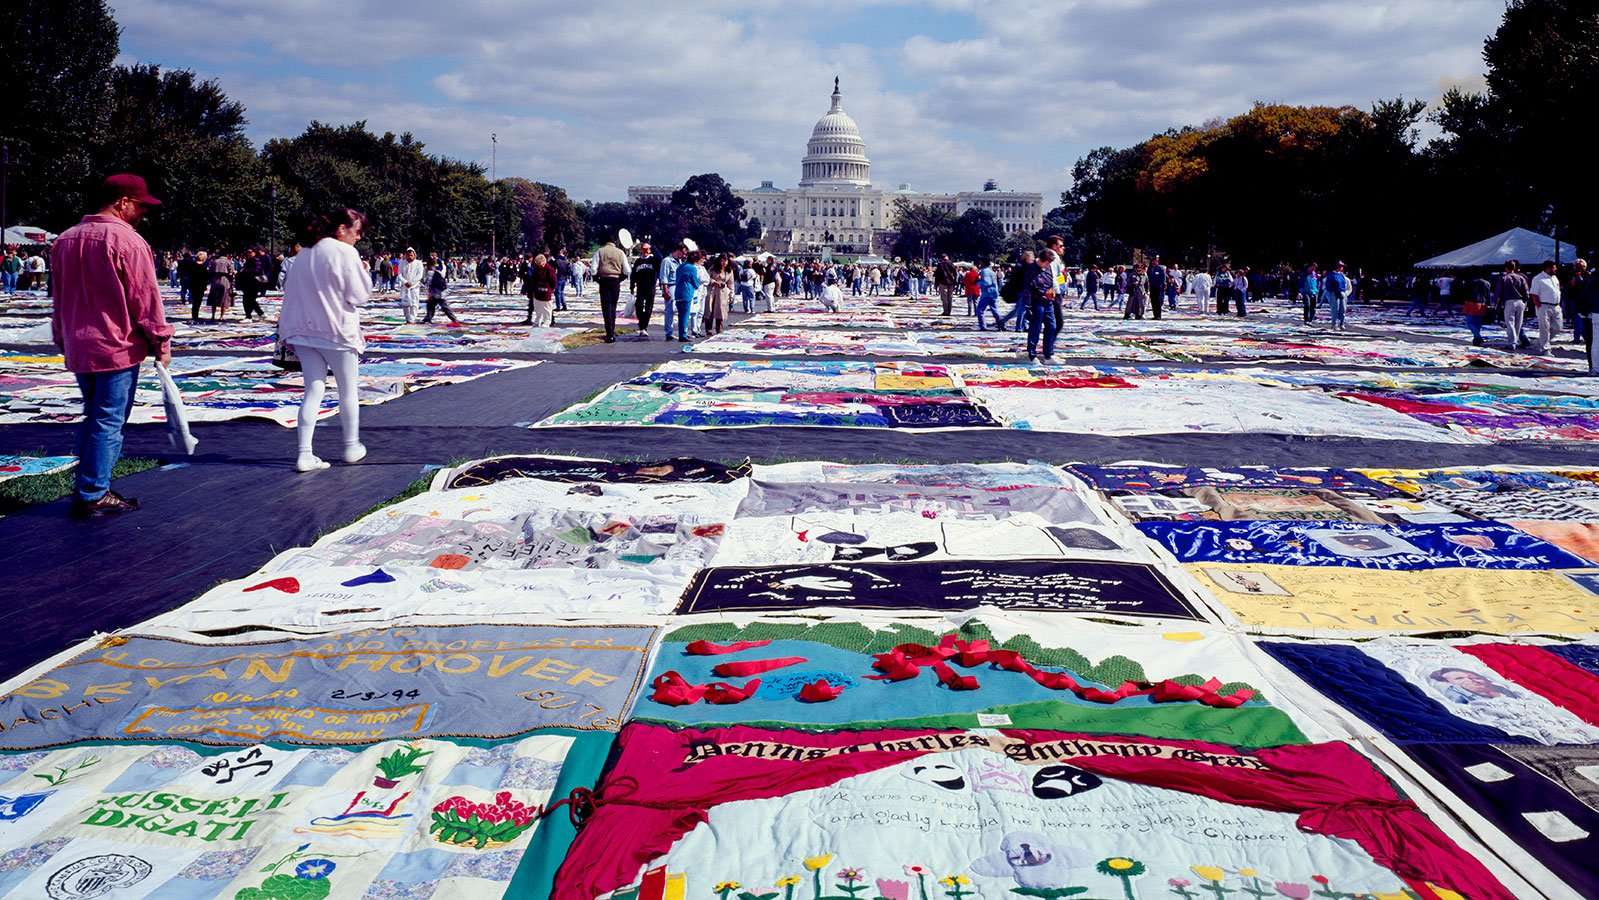 The AIDS Memorial Quilt on display on the National Mall in Washington, D.C. in 1987